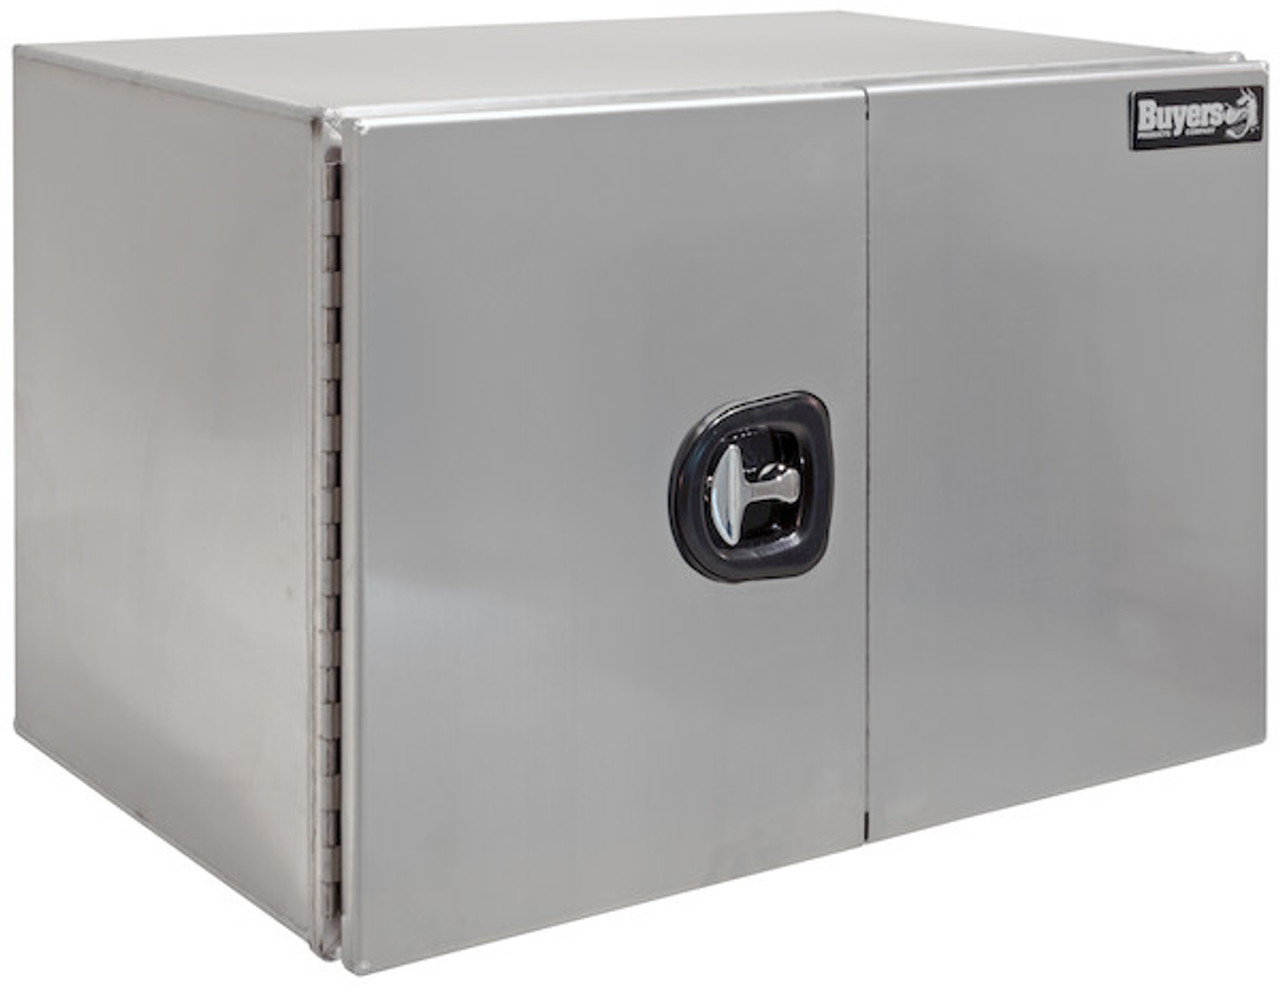 "1705435 BUYERS PRODUCTS XD SMOOTH ALUMINUM UNDERBODY TOOLBOX WITH BARN DOOR 24""HX24""DX36""W"